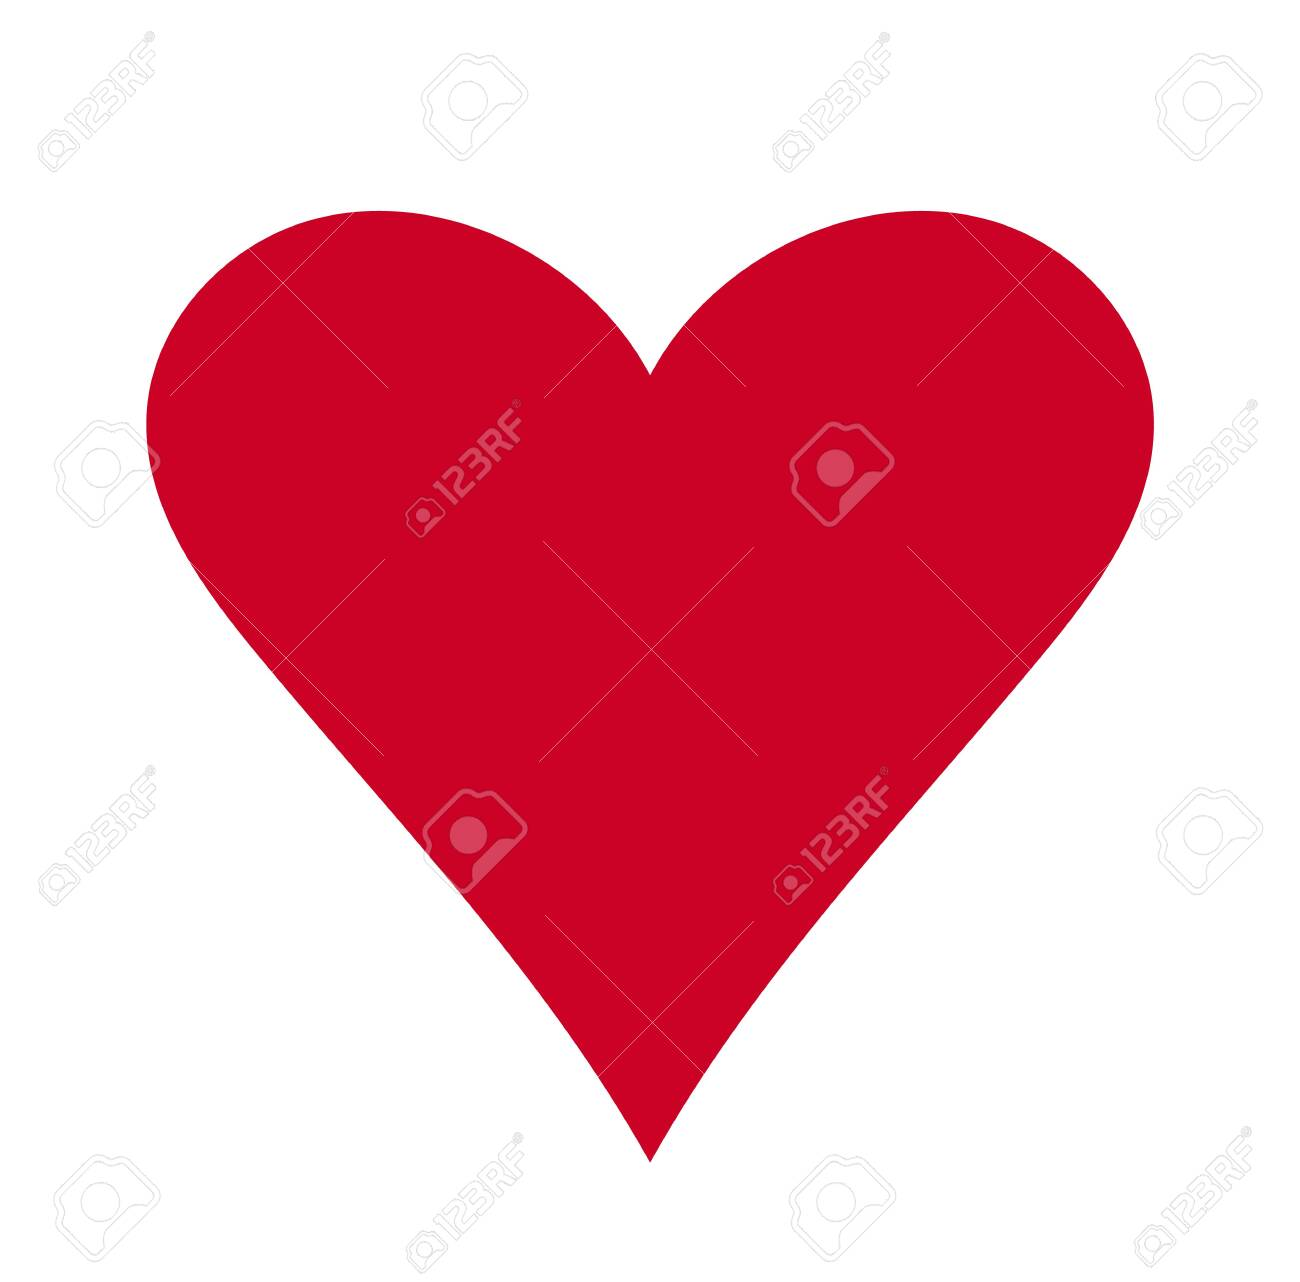 Heart, Symbol of Love and Valentine's Day. Flat Red Icon Isolated on White Background. Vector illustration. - Vector - 121676825